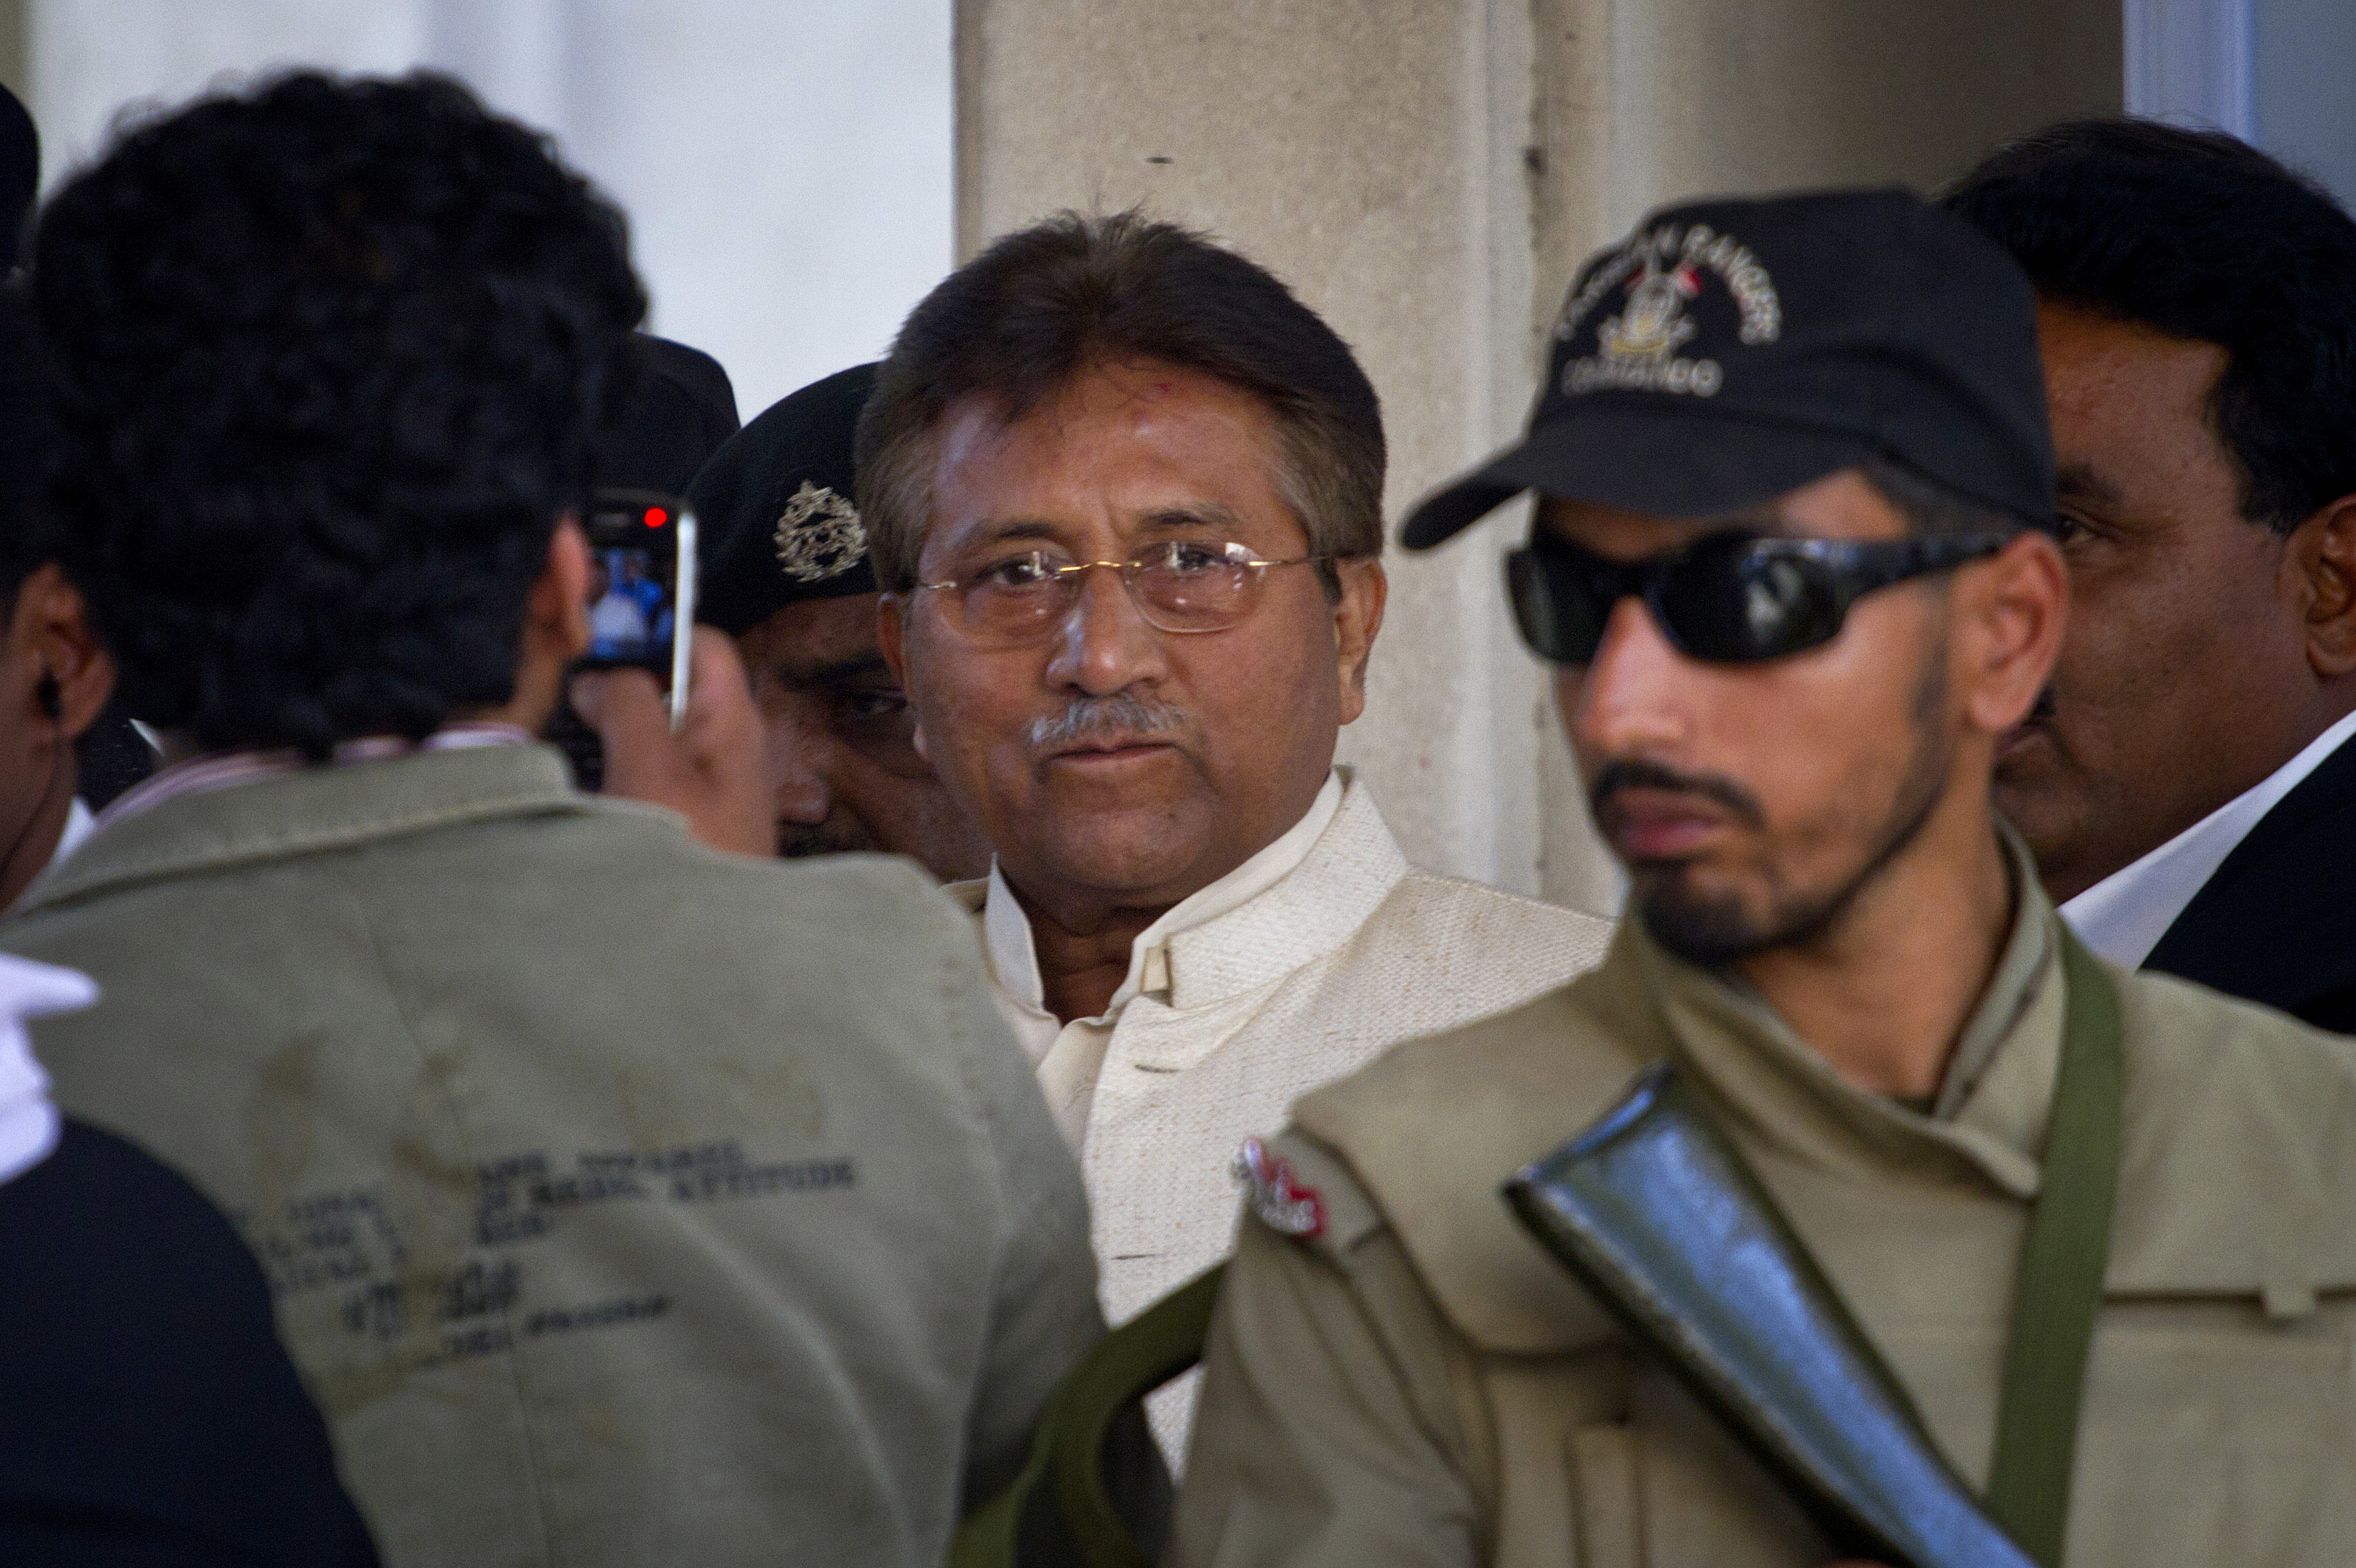 Musharraf leaves after appearing in court in Rawalpindi, April 17, 2013. Musharraf appeared in court to seek bail in Benazir Bhutto's assassination case. The Supreme Court ordered Musharraf to respond to allegations that he committed treason while in power, and barred him from leaving the country only weeks after he returned. — AP